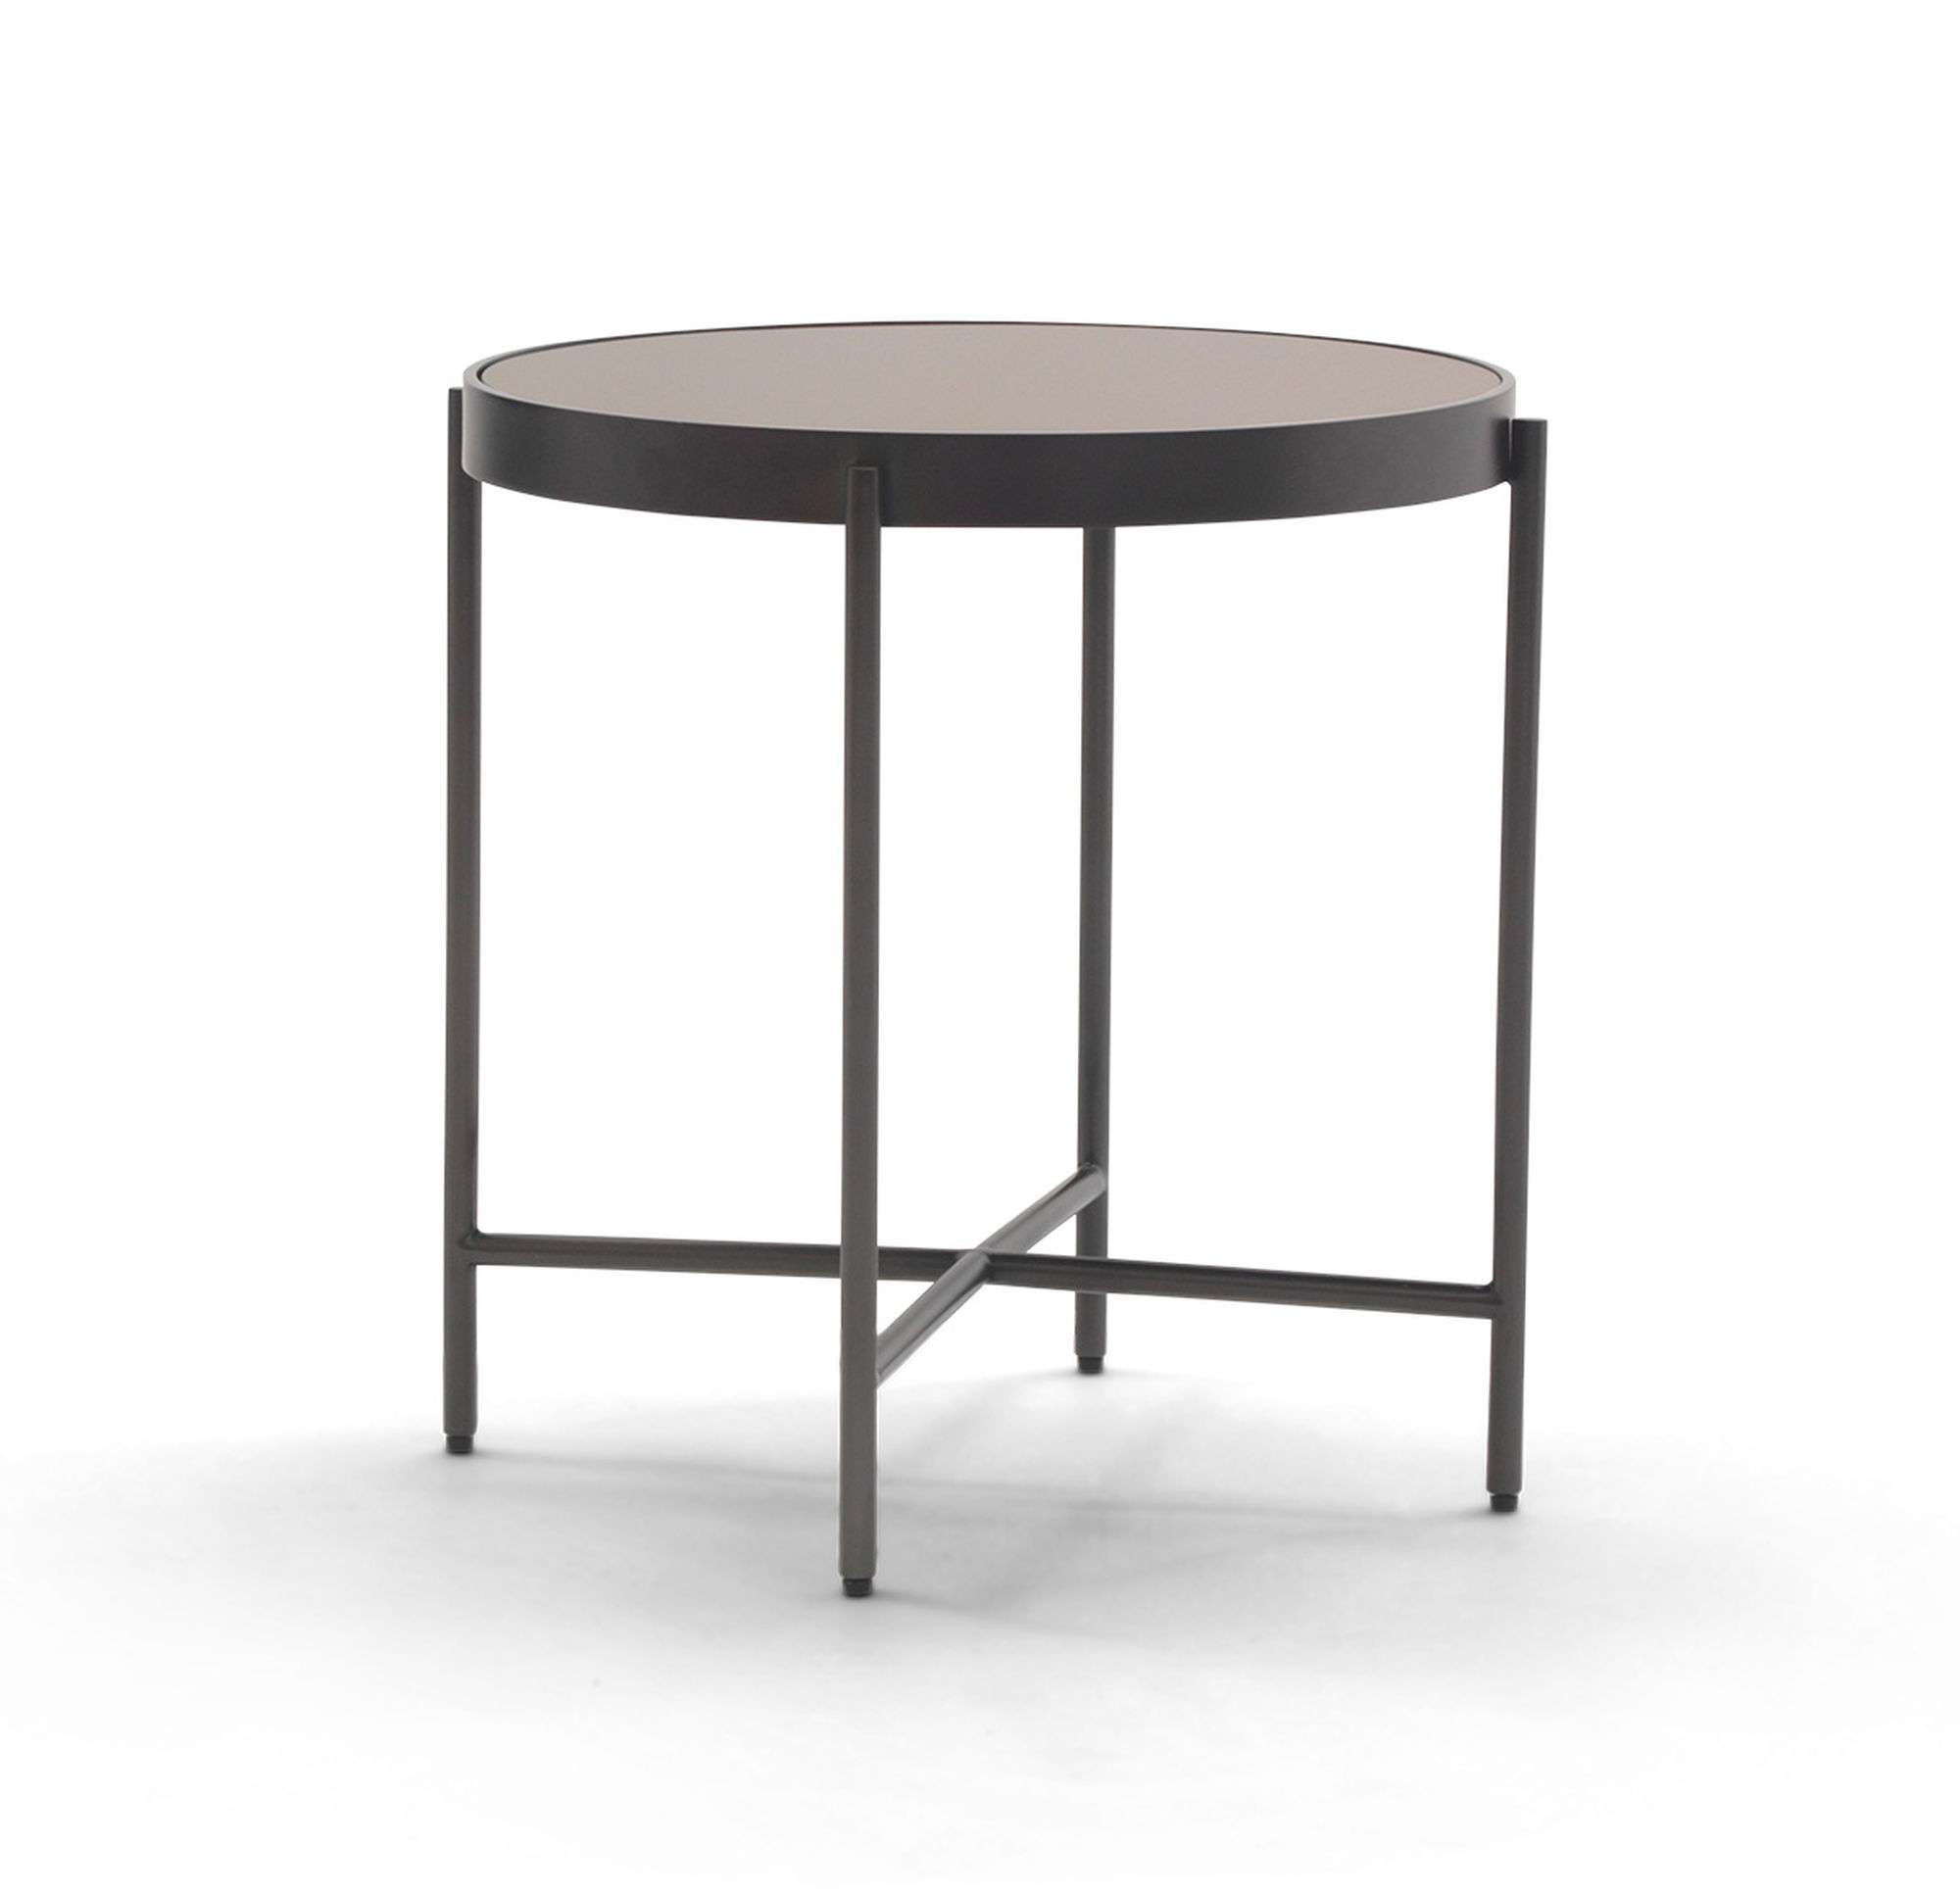 turino mirror bunching cocktail table bronze turinococktail ctb hero metal accent tables small deck formal living room furniture hooker end dark gray astoria grand drum seat